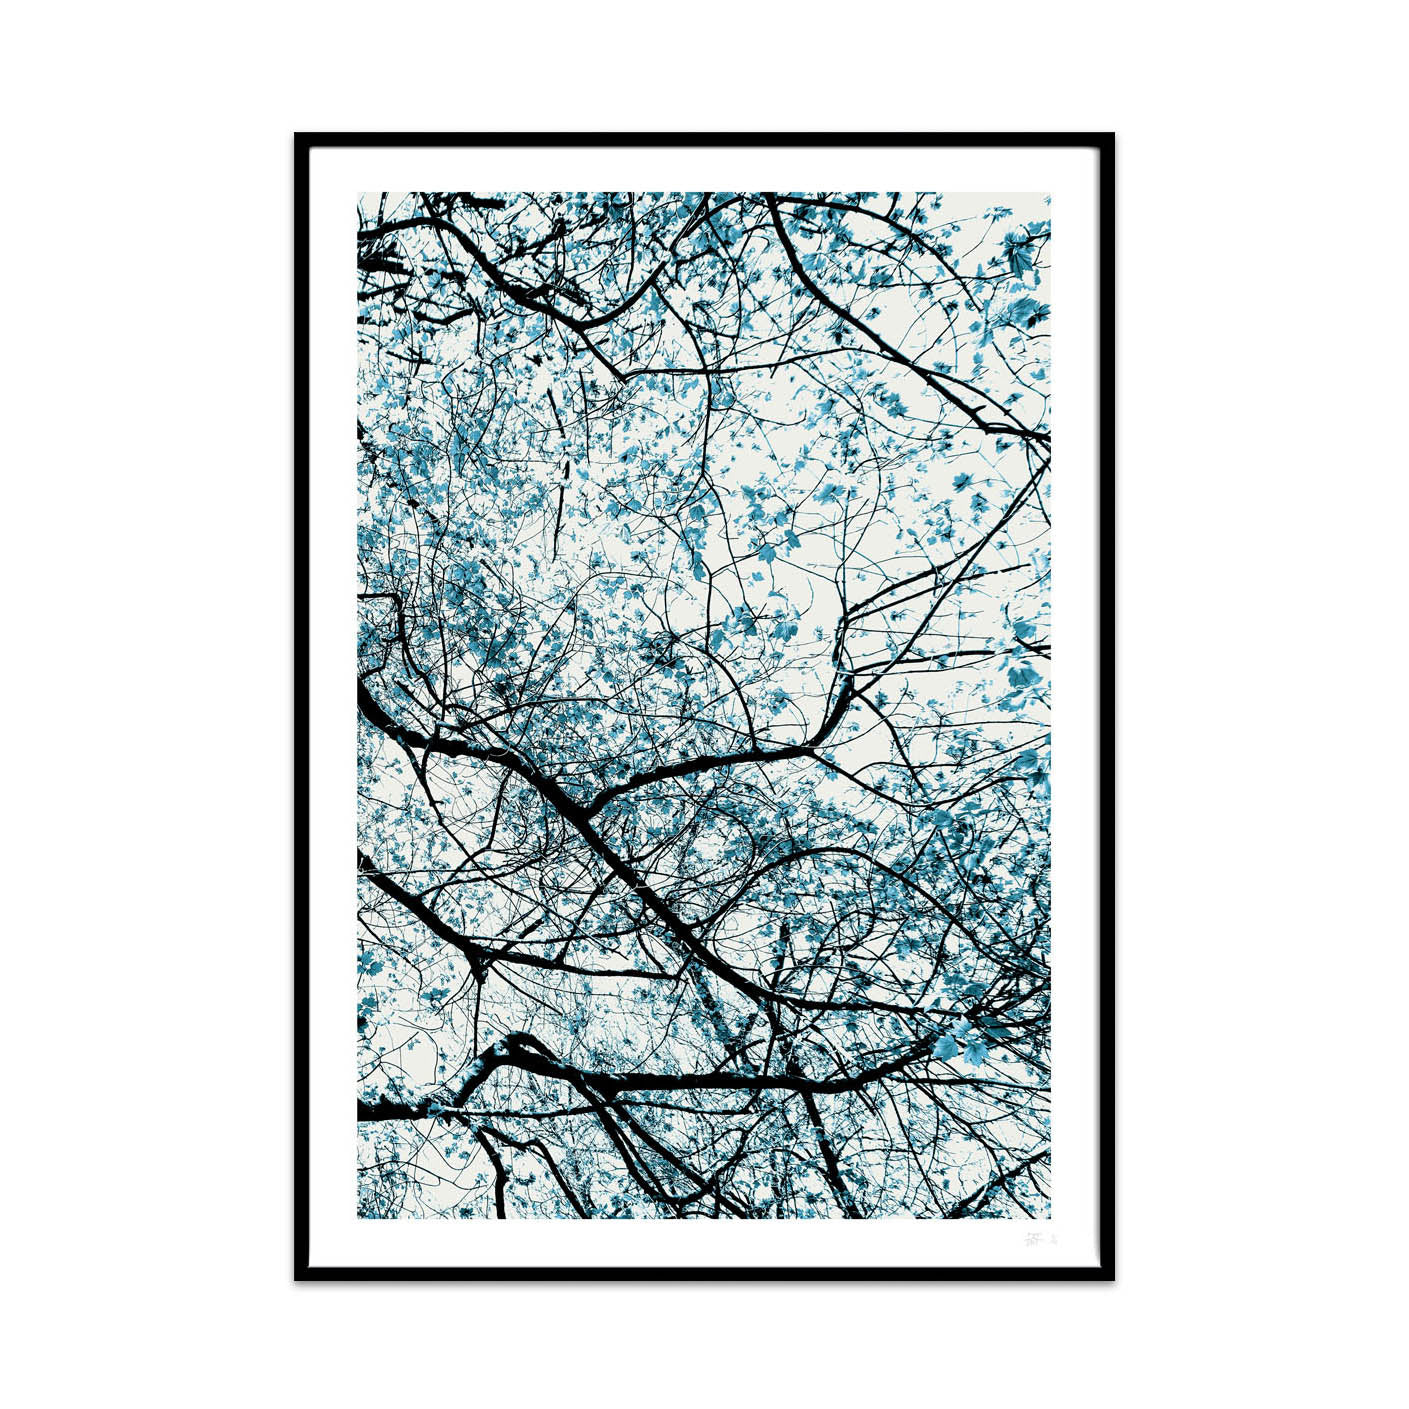 what Phil sees limited edition typography and photography art prints for your home and gallery wall this print is called natural network.